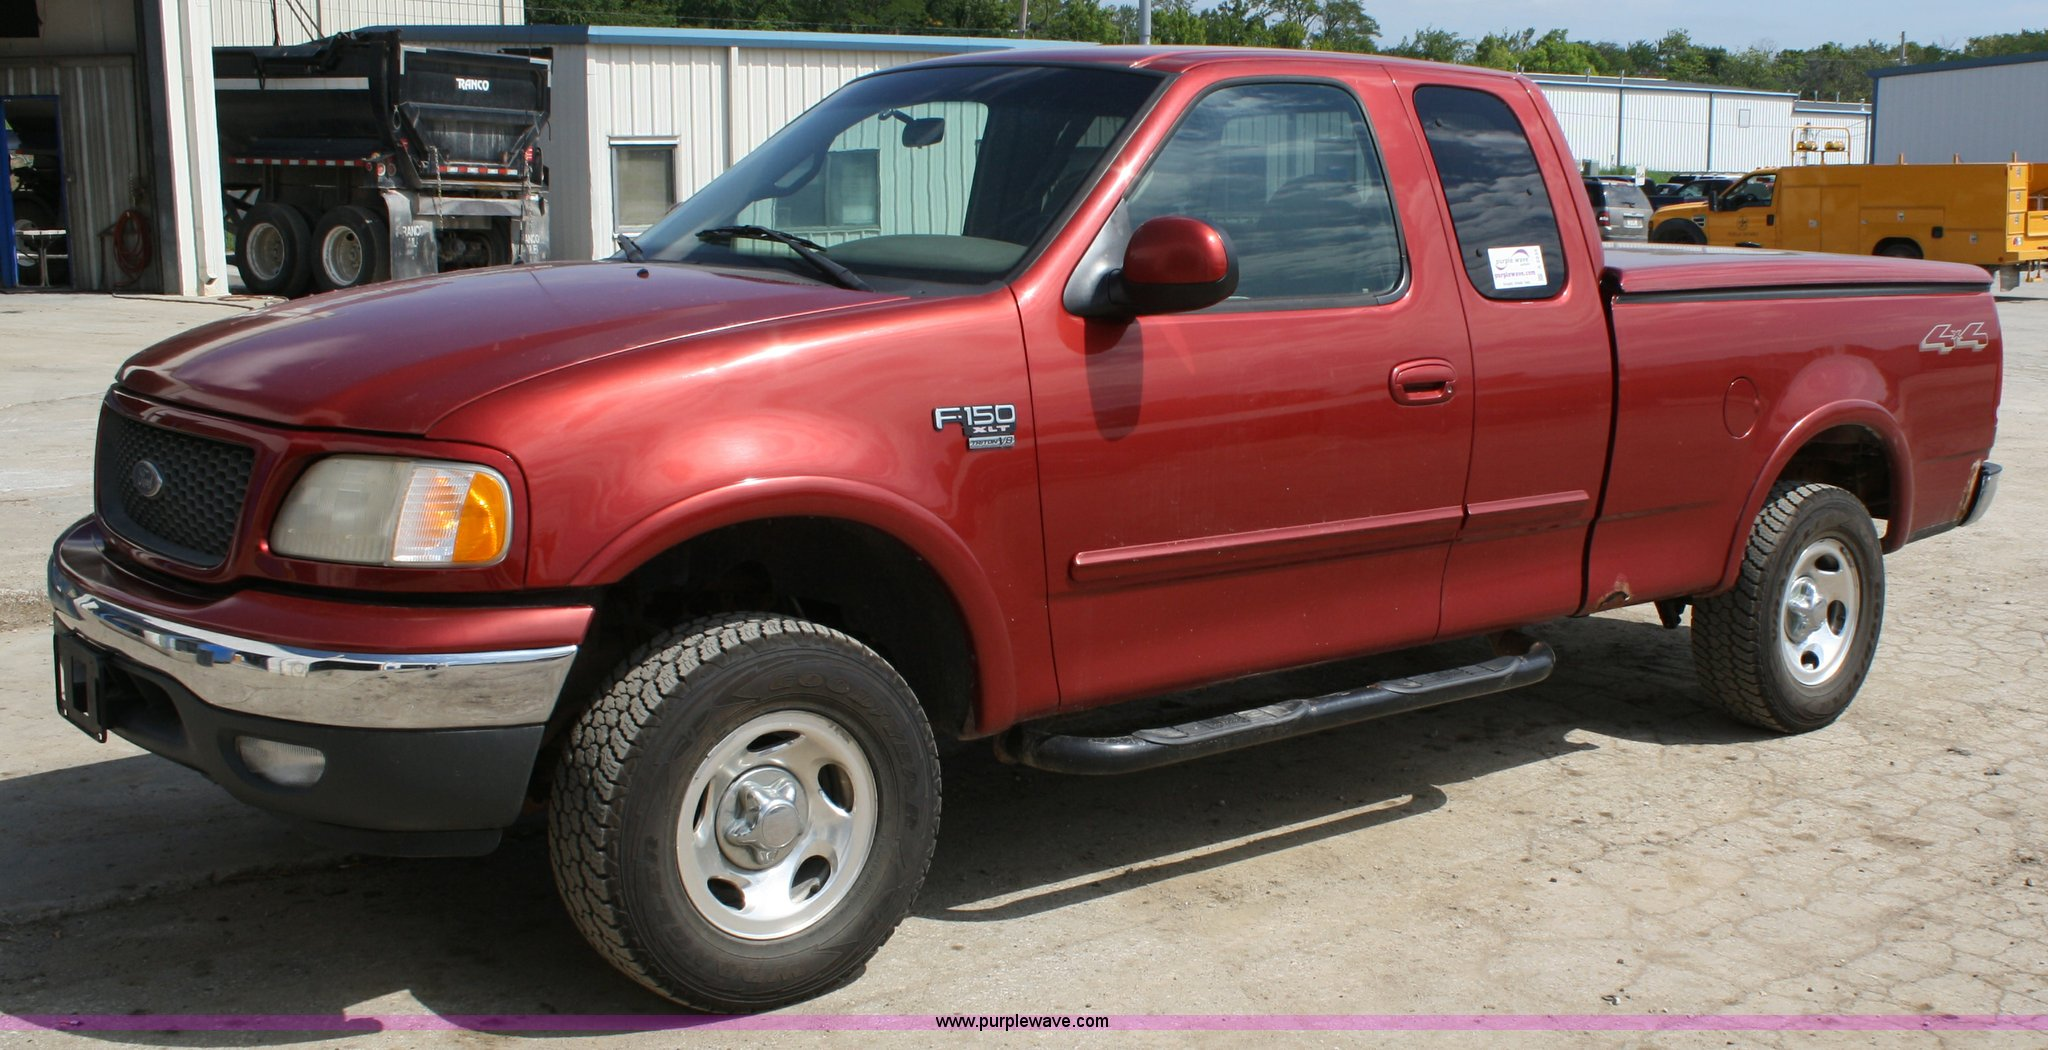 A2235 image for item a2235 2000 ford f150 extended cab